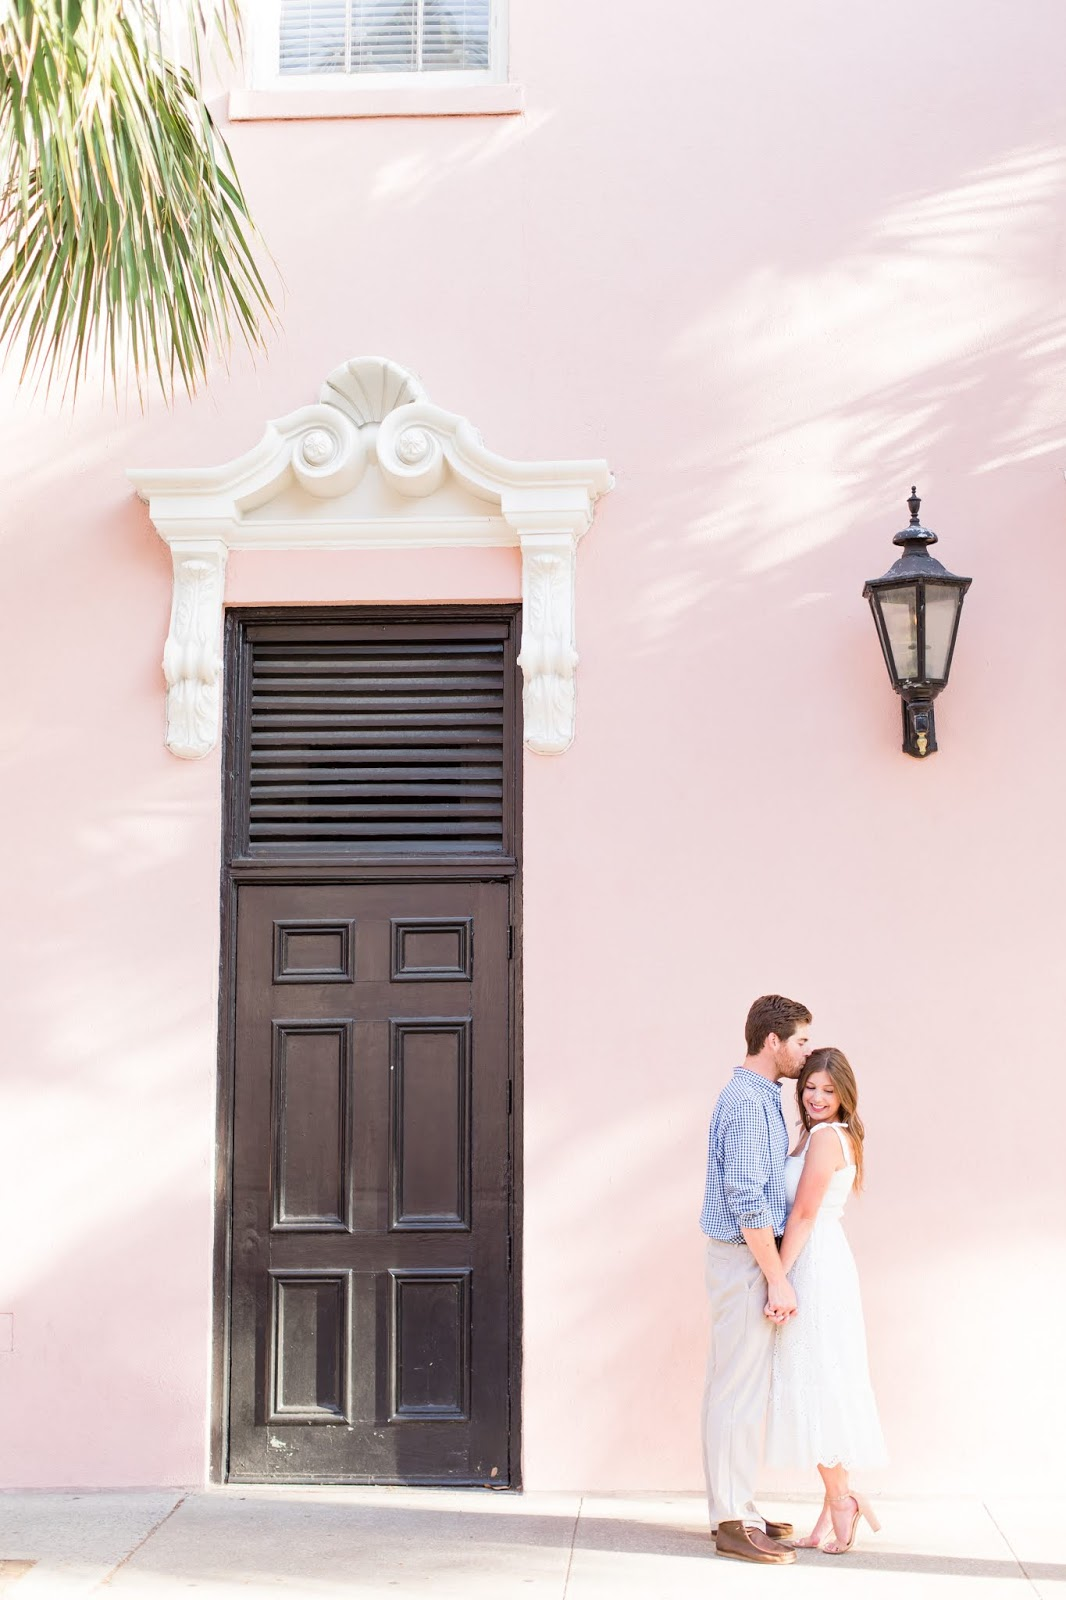 Charleston Engagement Photoshoot Session - Chasing Cinderella